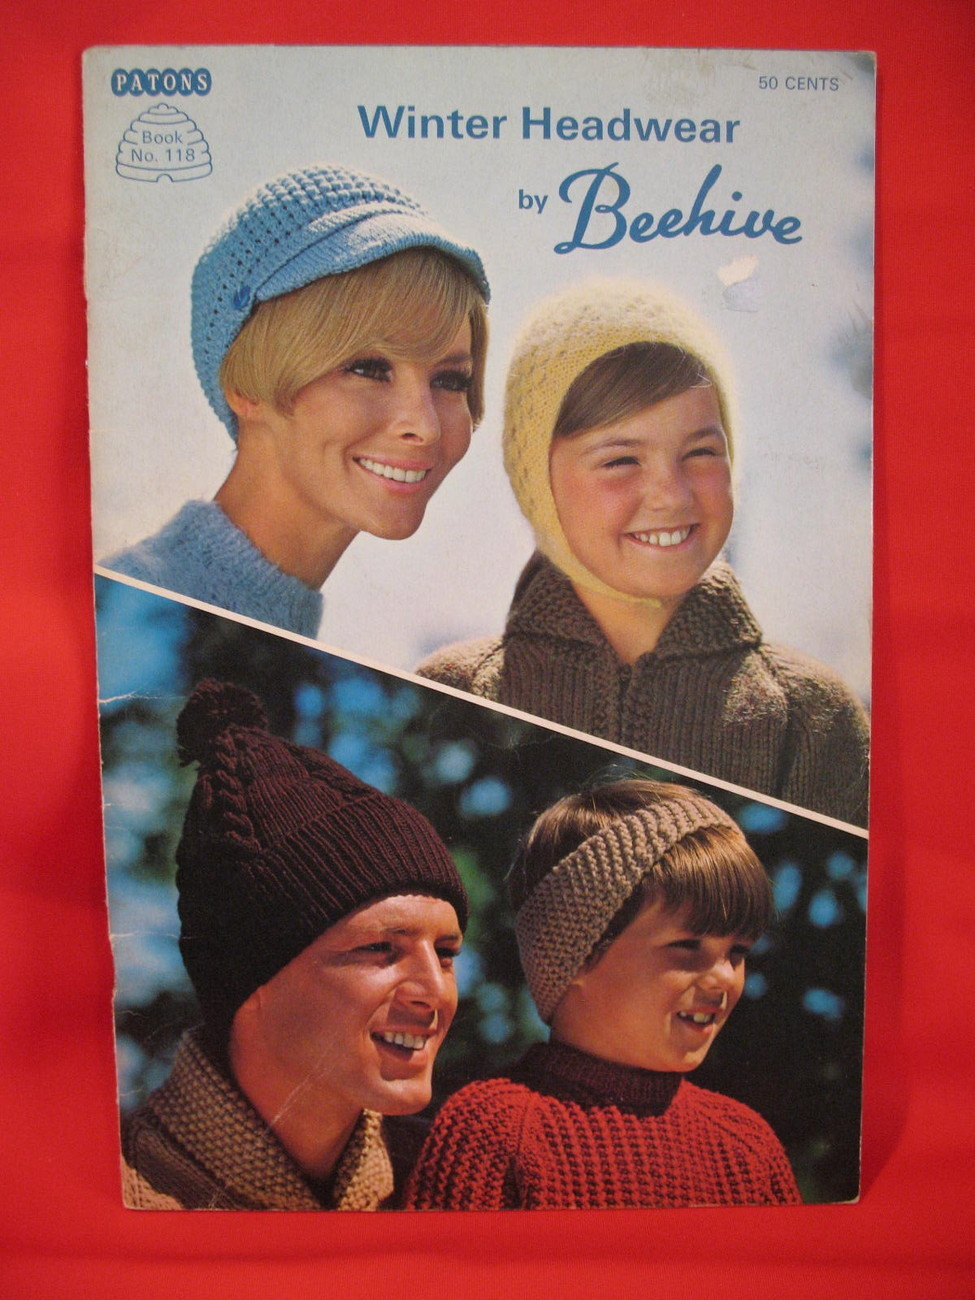 Beehive Winter Headwear Knitting Patterns Family Hats Caps